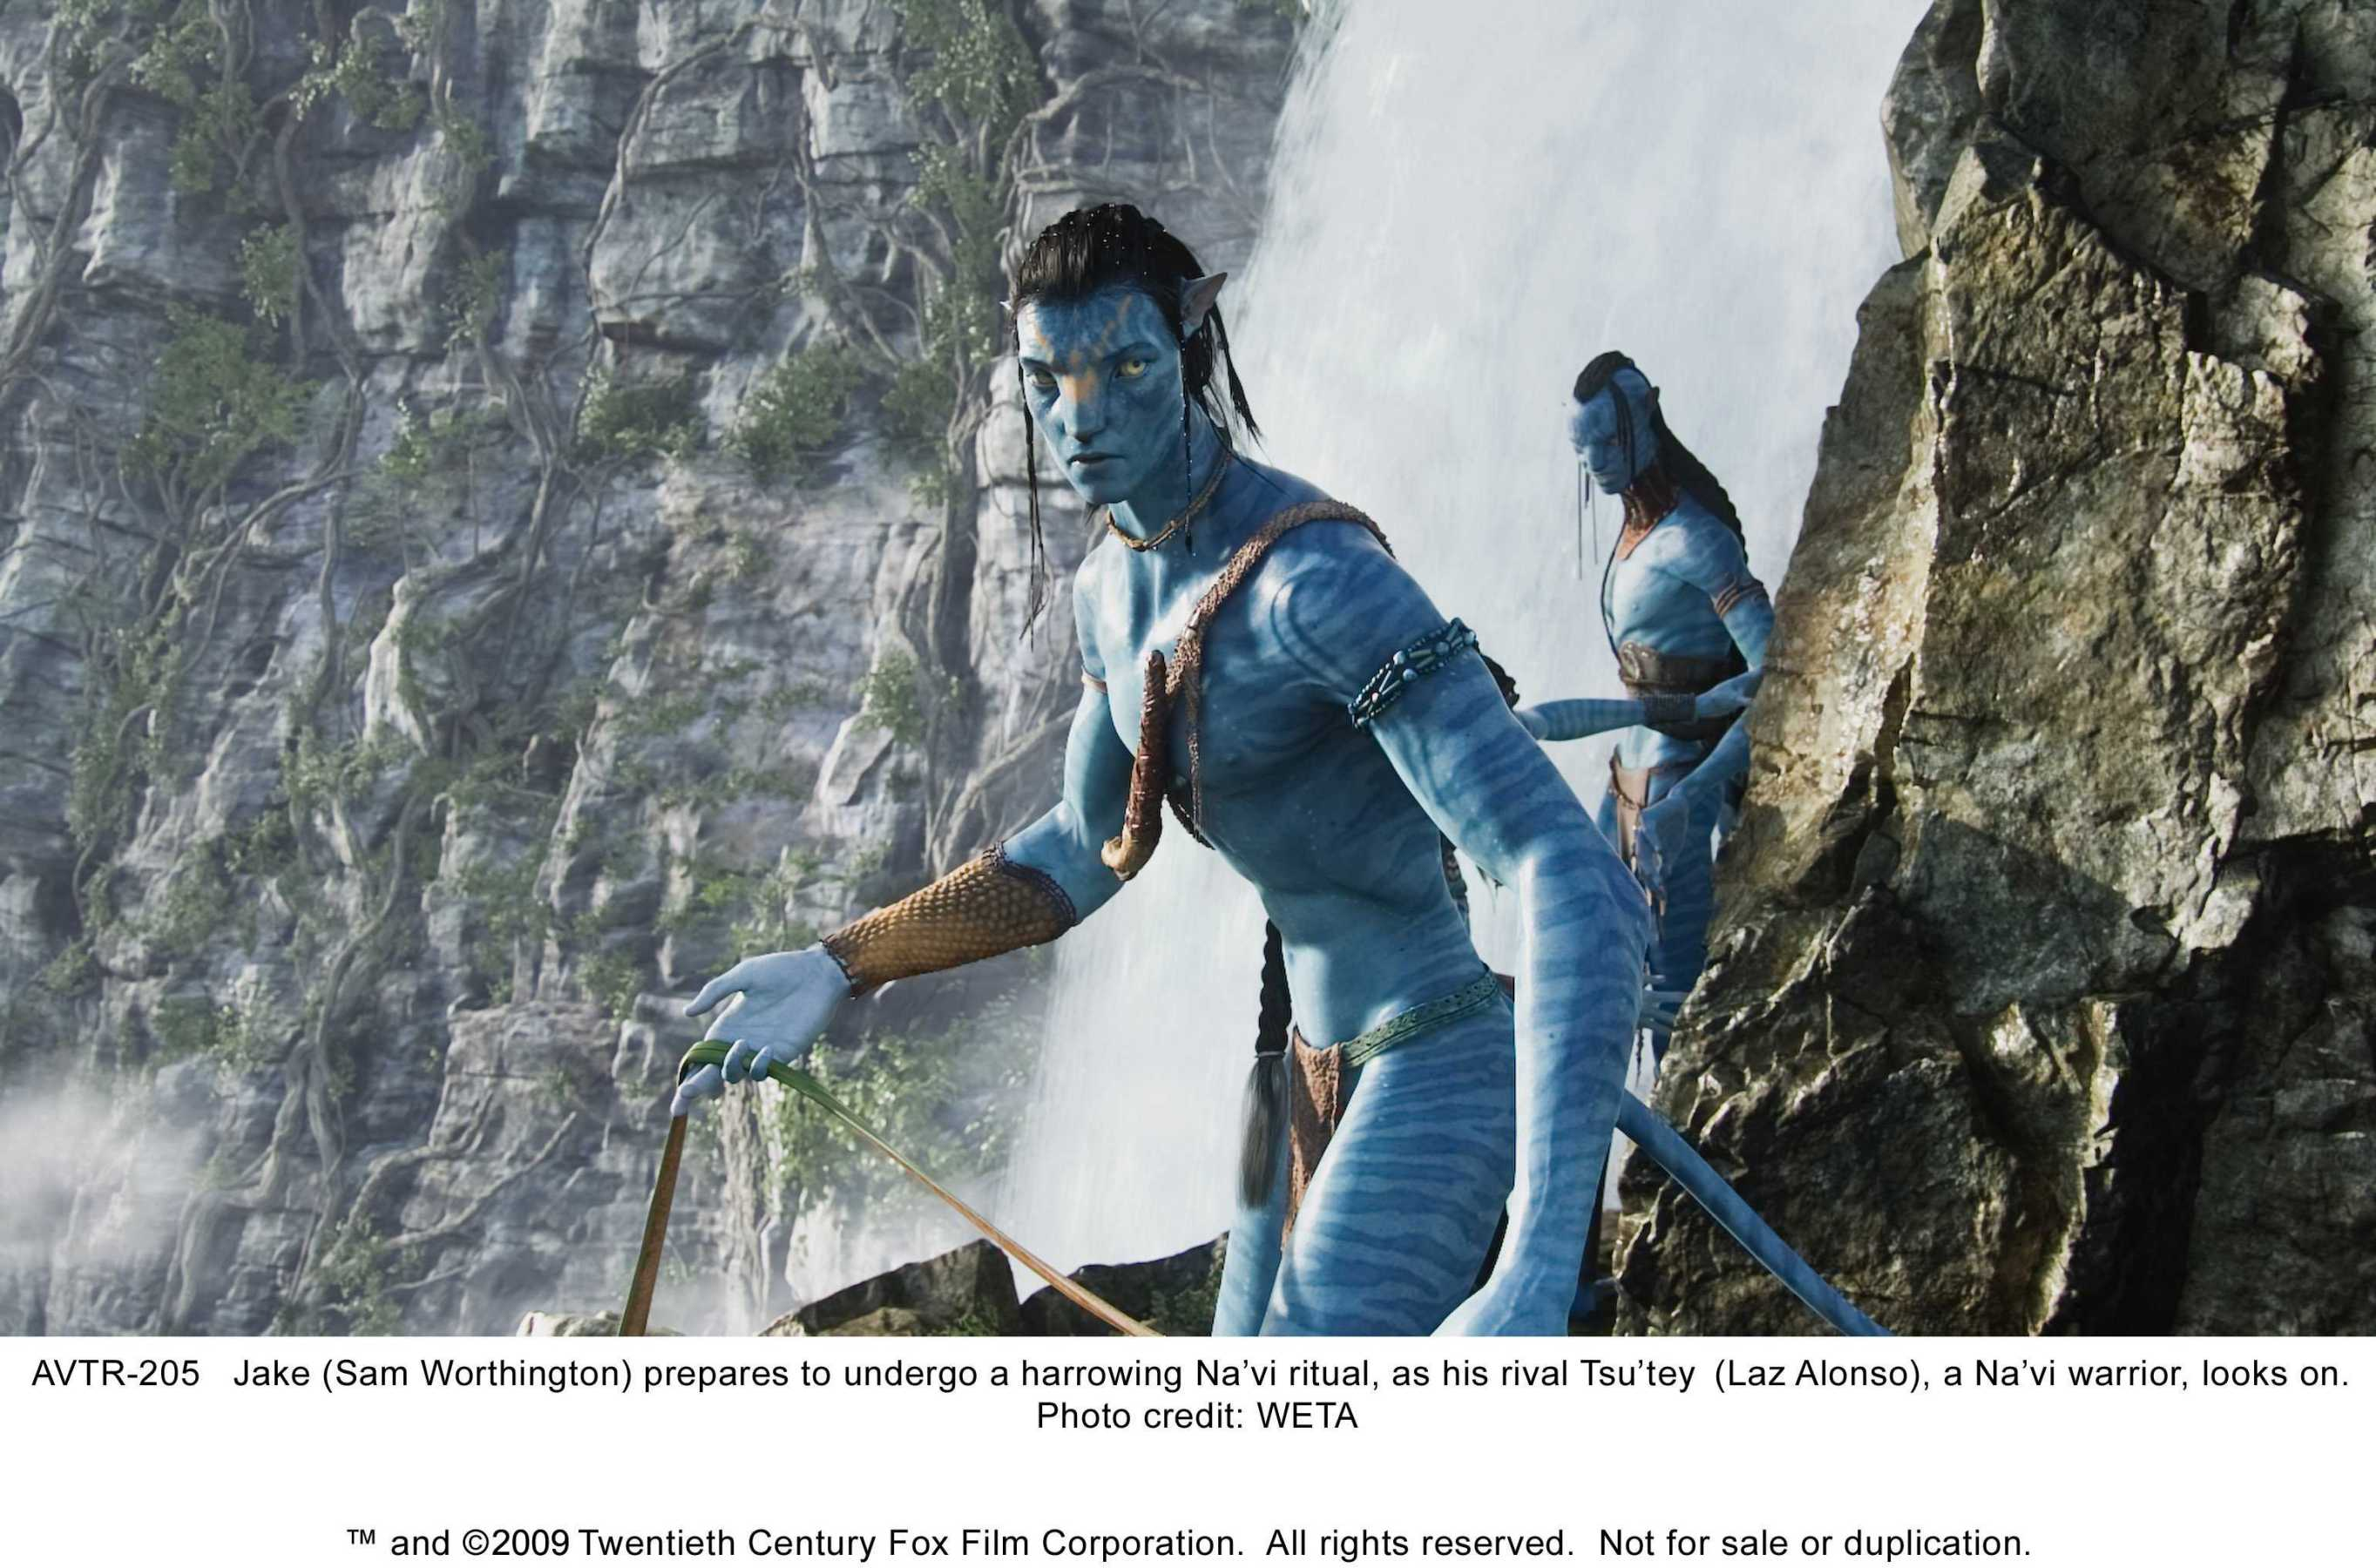 The Movie Avatar 2009 with a